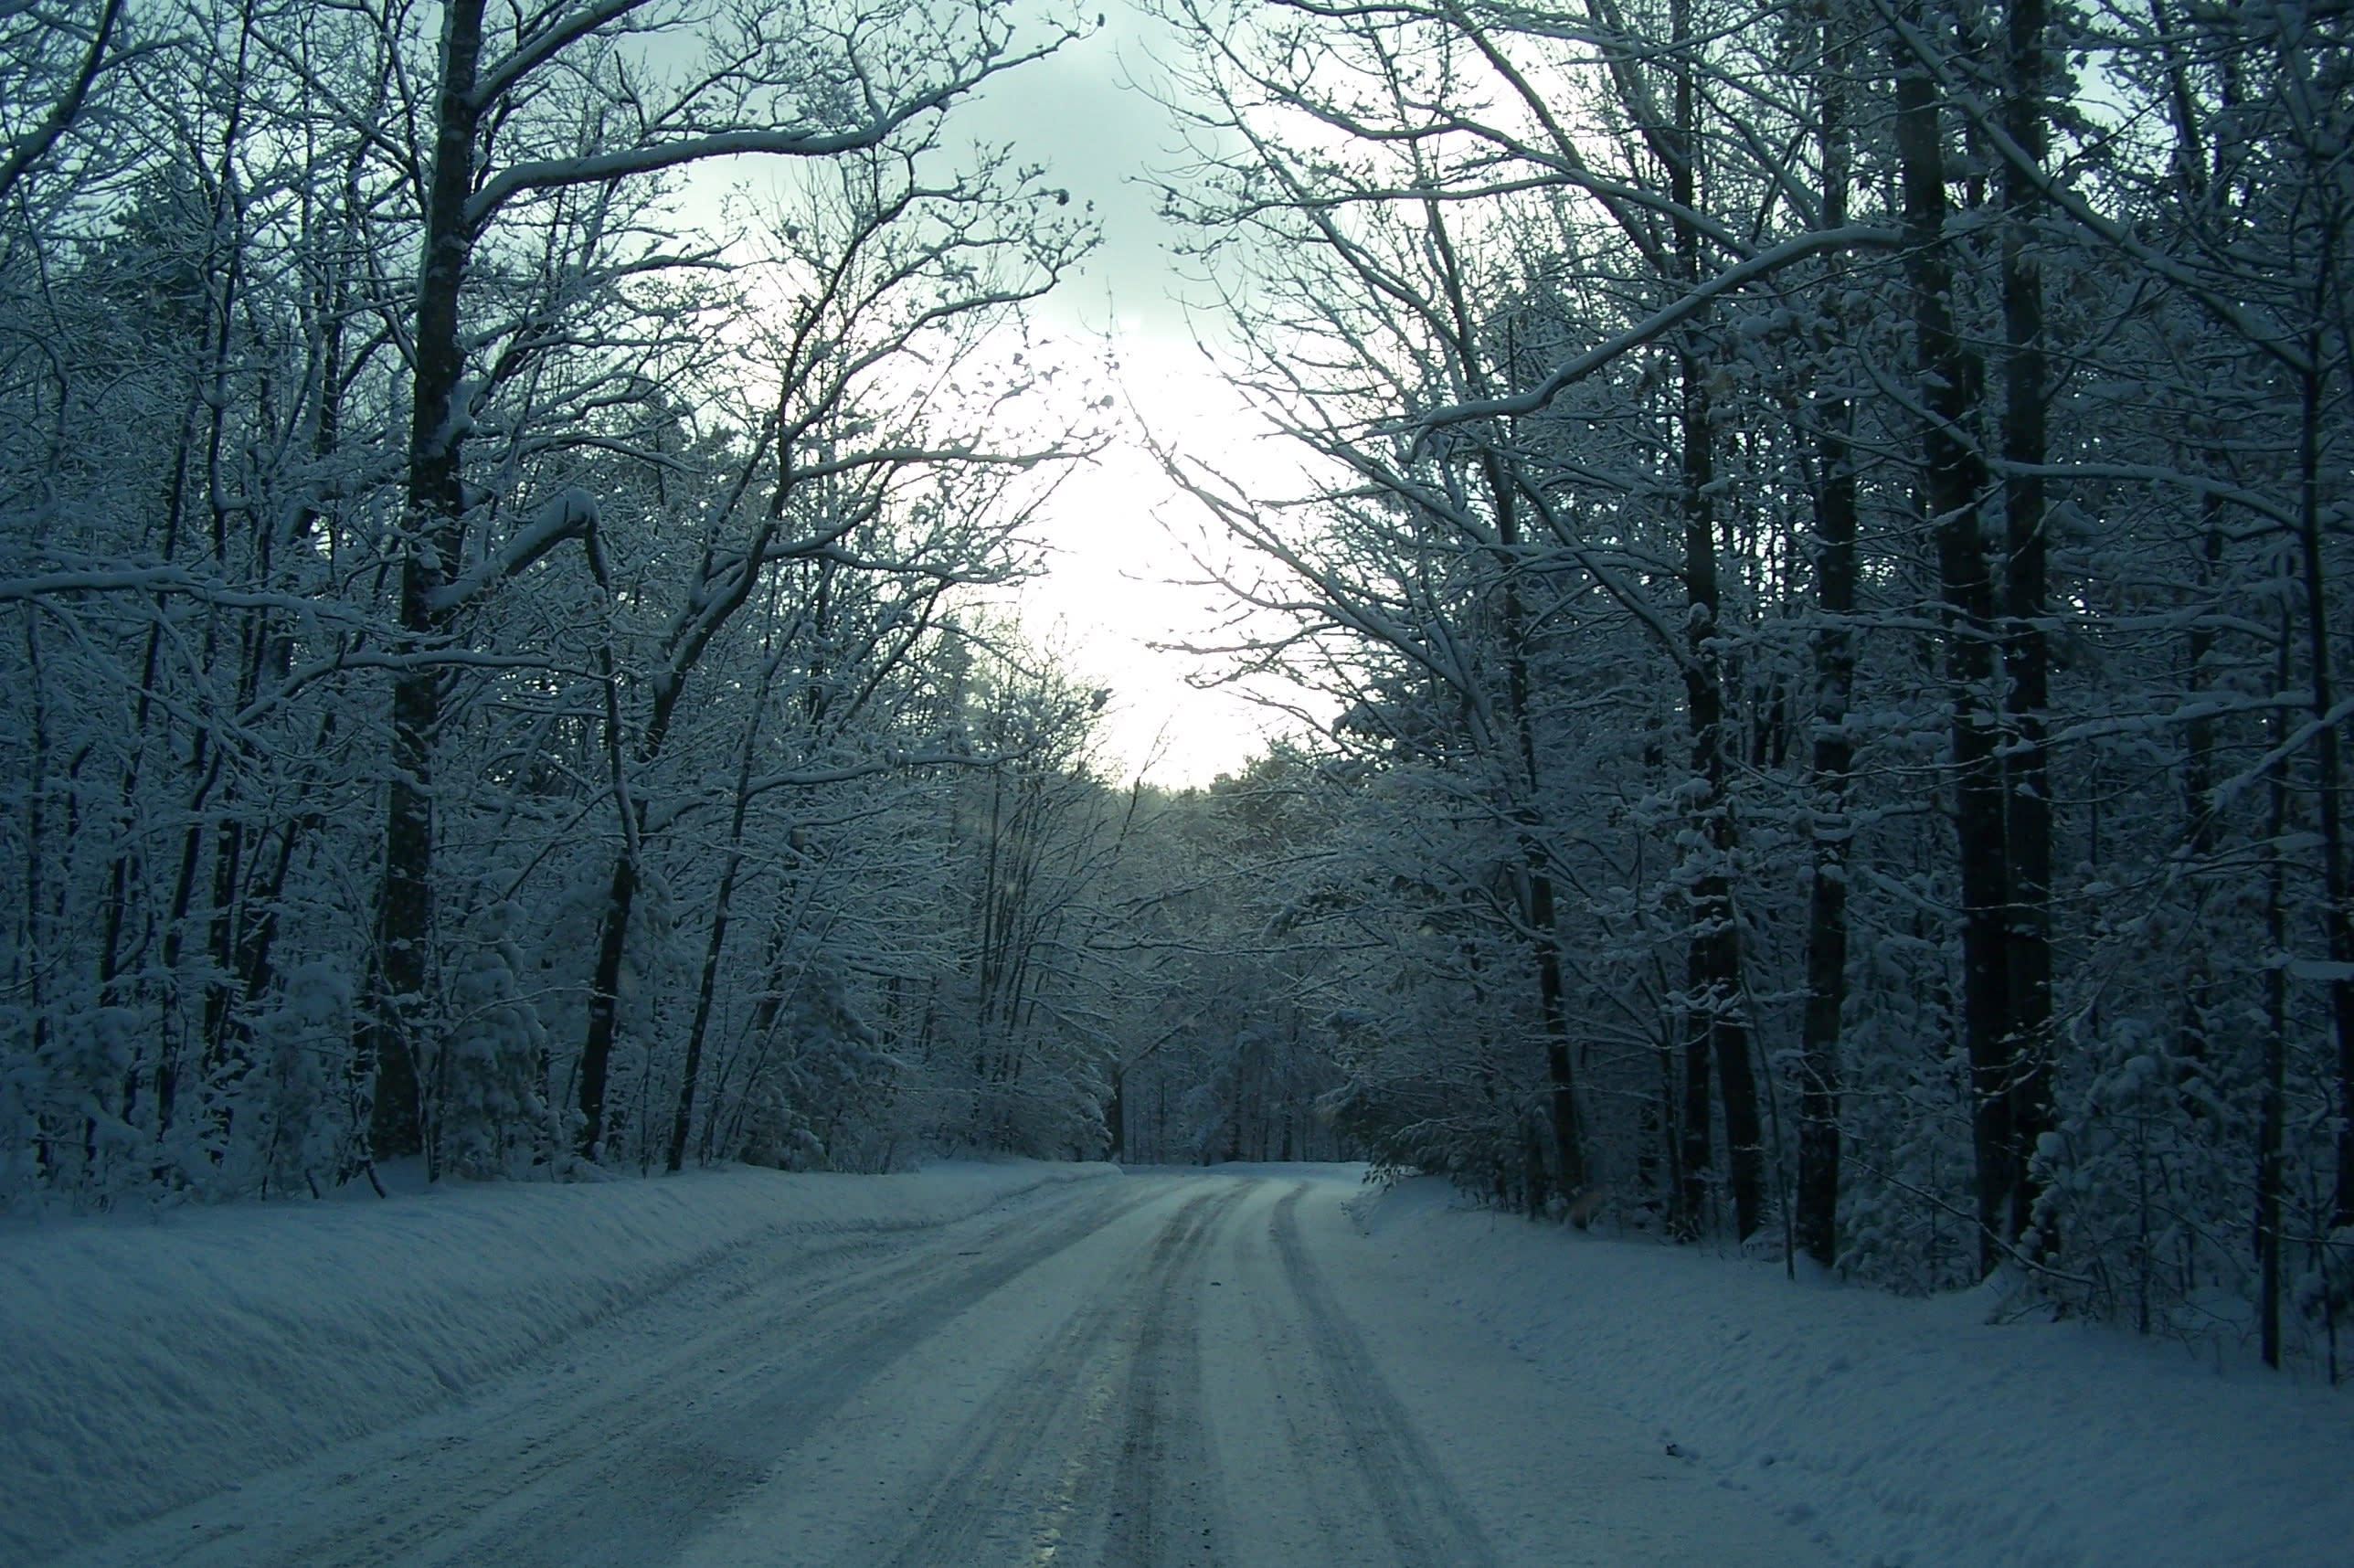 A tranquil drive through the Finger Lakes National Forest